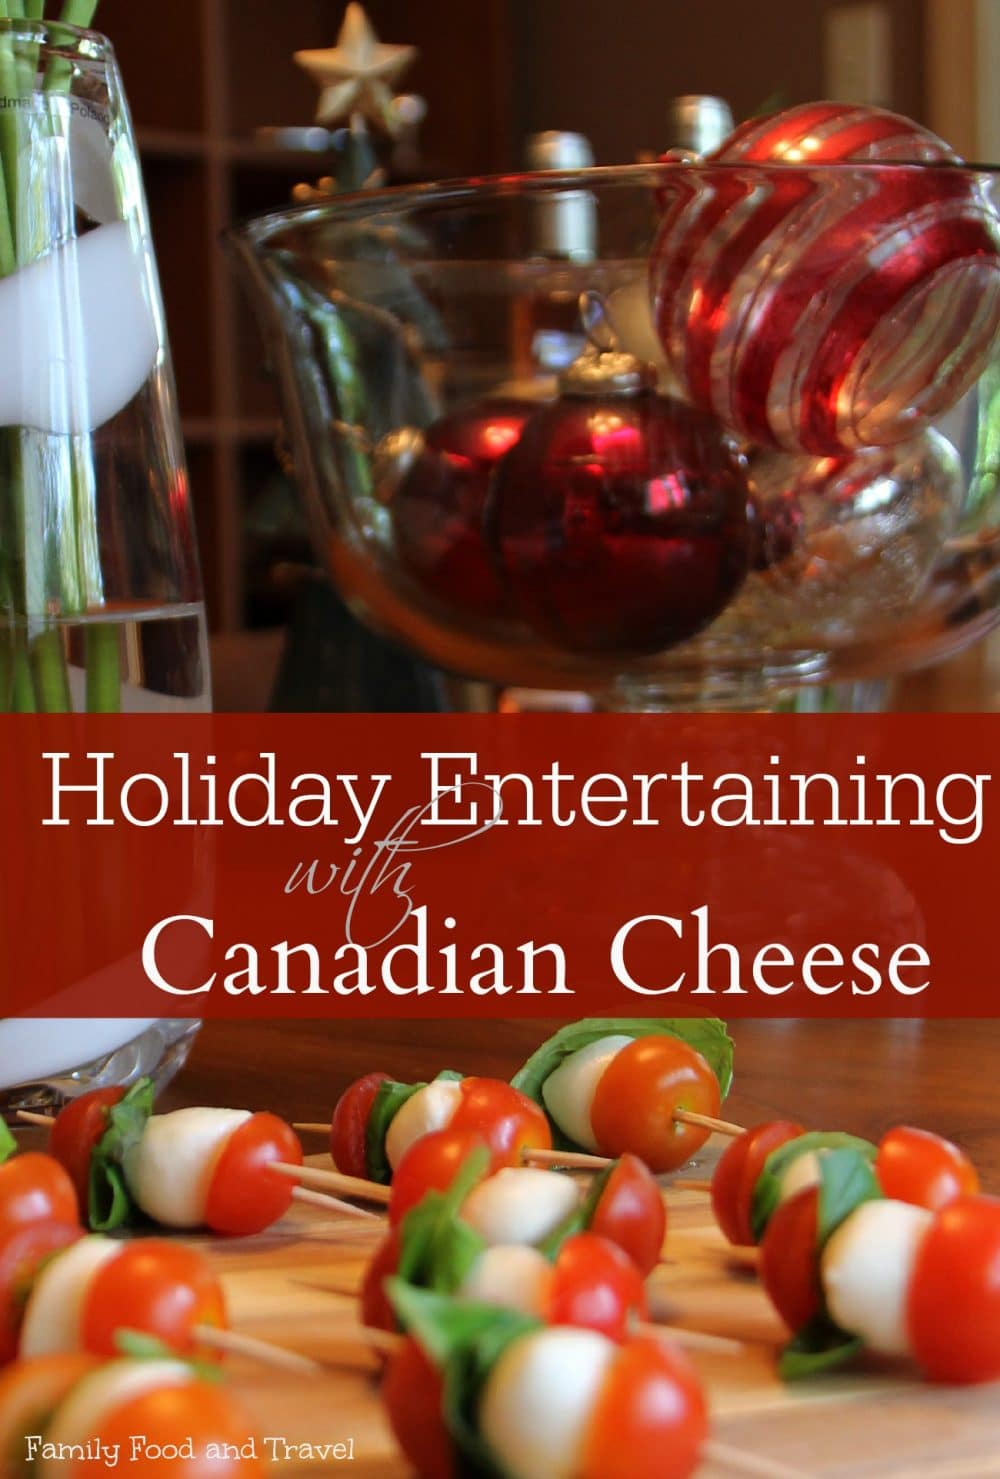 Holiday Entertaining with Cheese #CDNcheese, #simplepleasures, #holidays